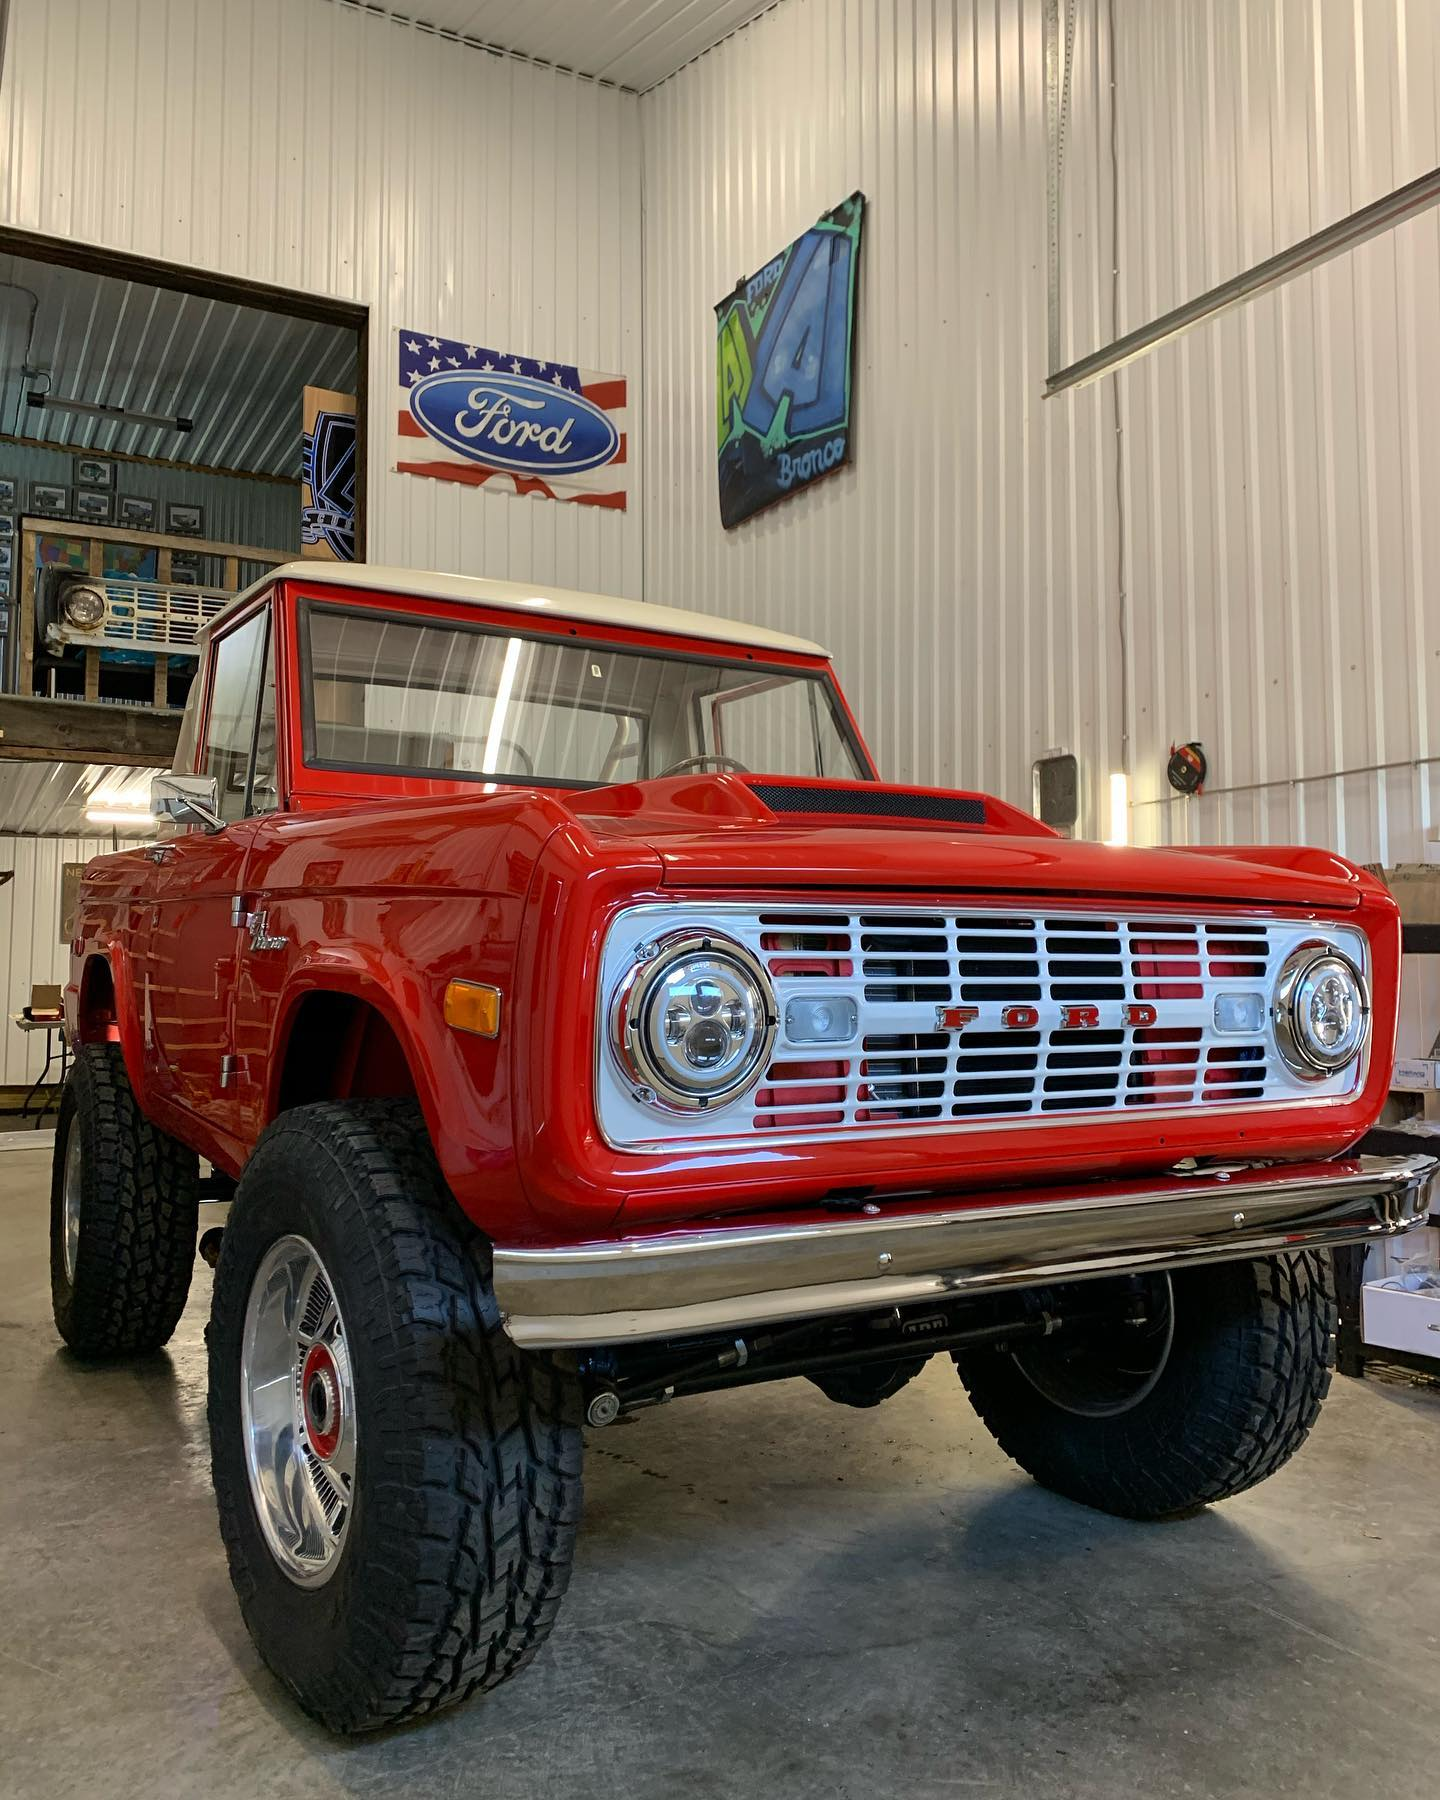 LAL-Customs-Ford-Bronco-Restoration-T-Man-Build-4